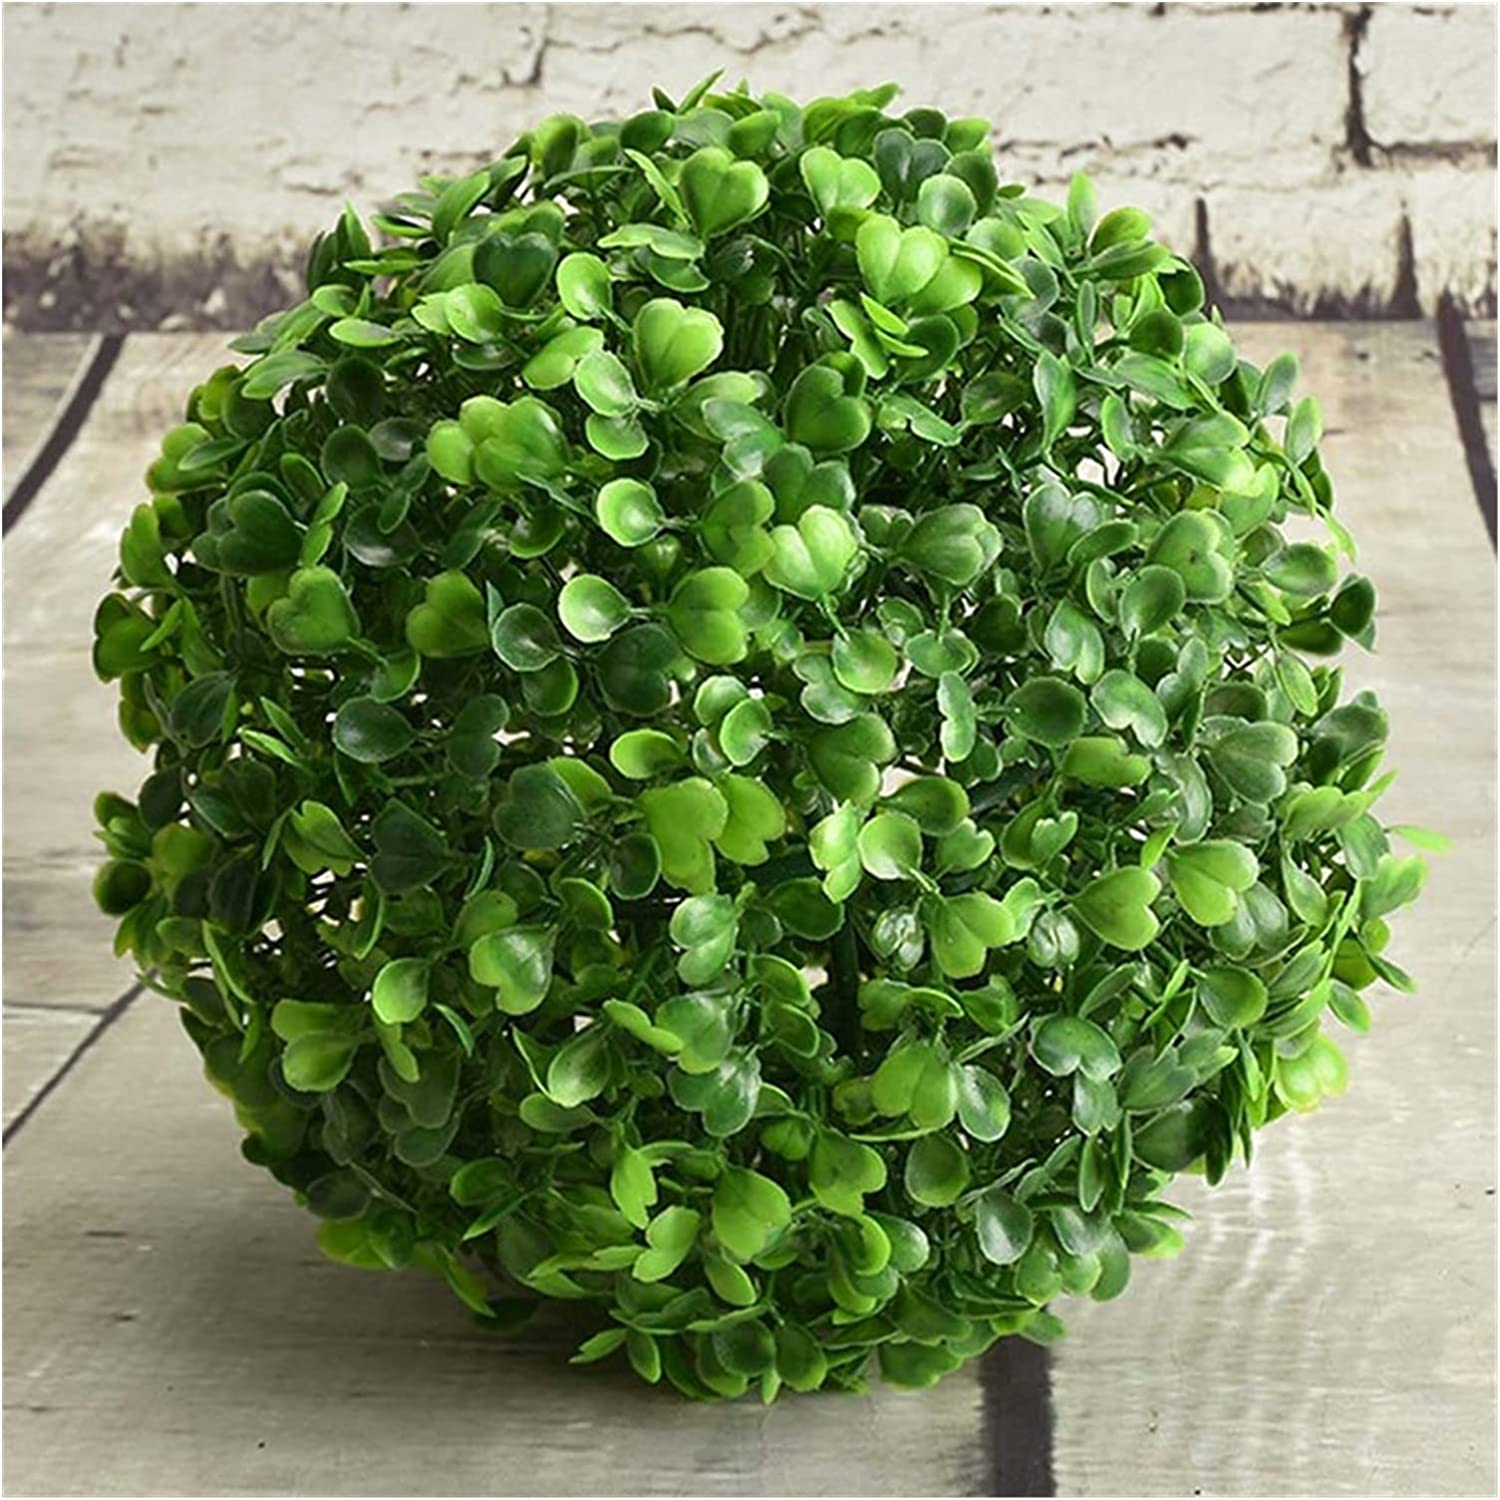 Realistic Max 48% OFF Faux Plants Artificial SEAL limited product Plant Topiary Ball Le Tree